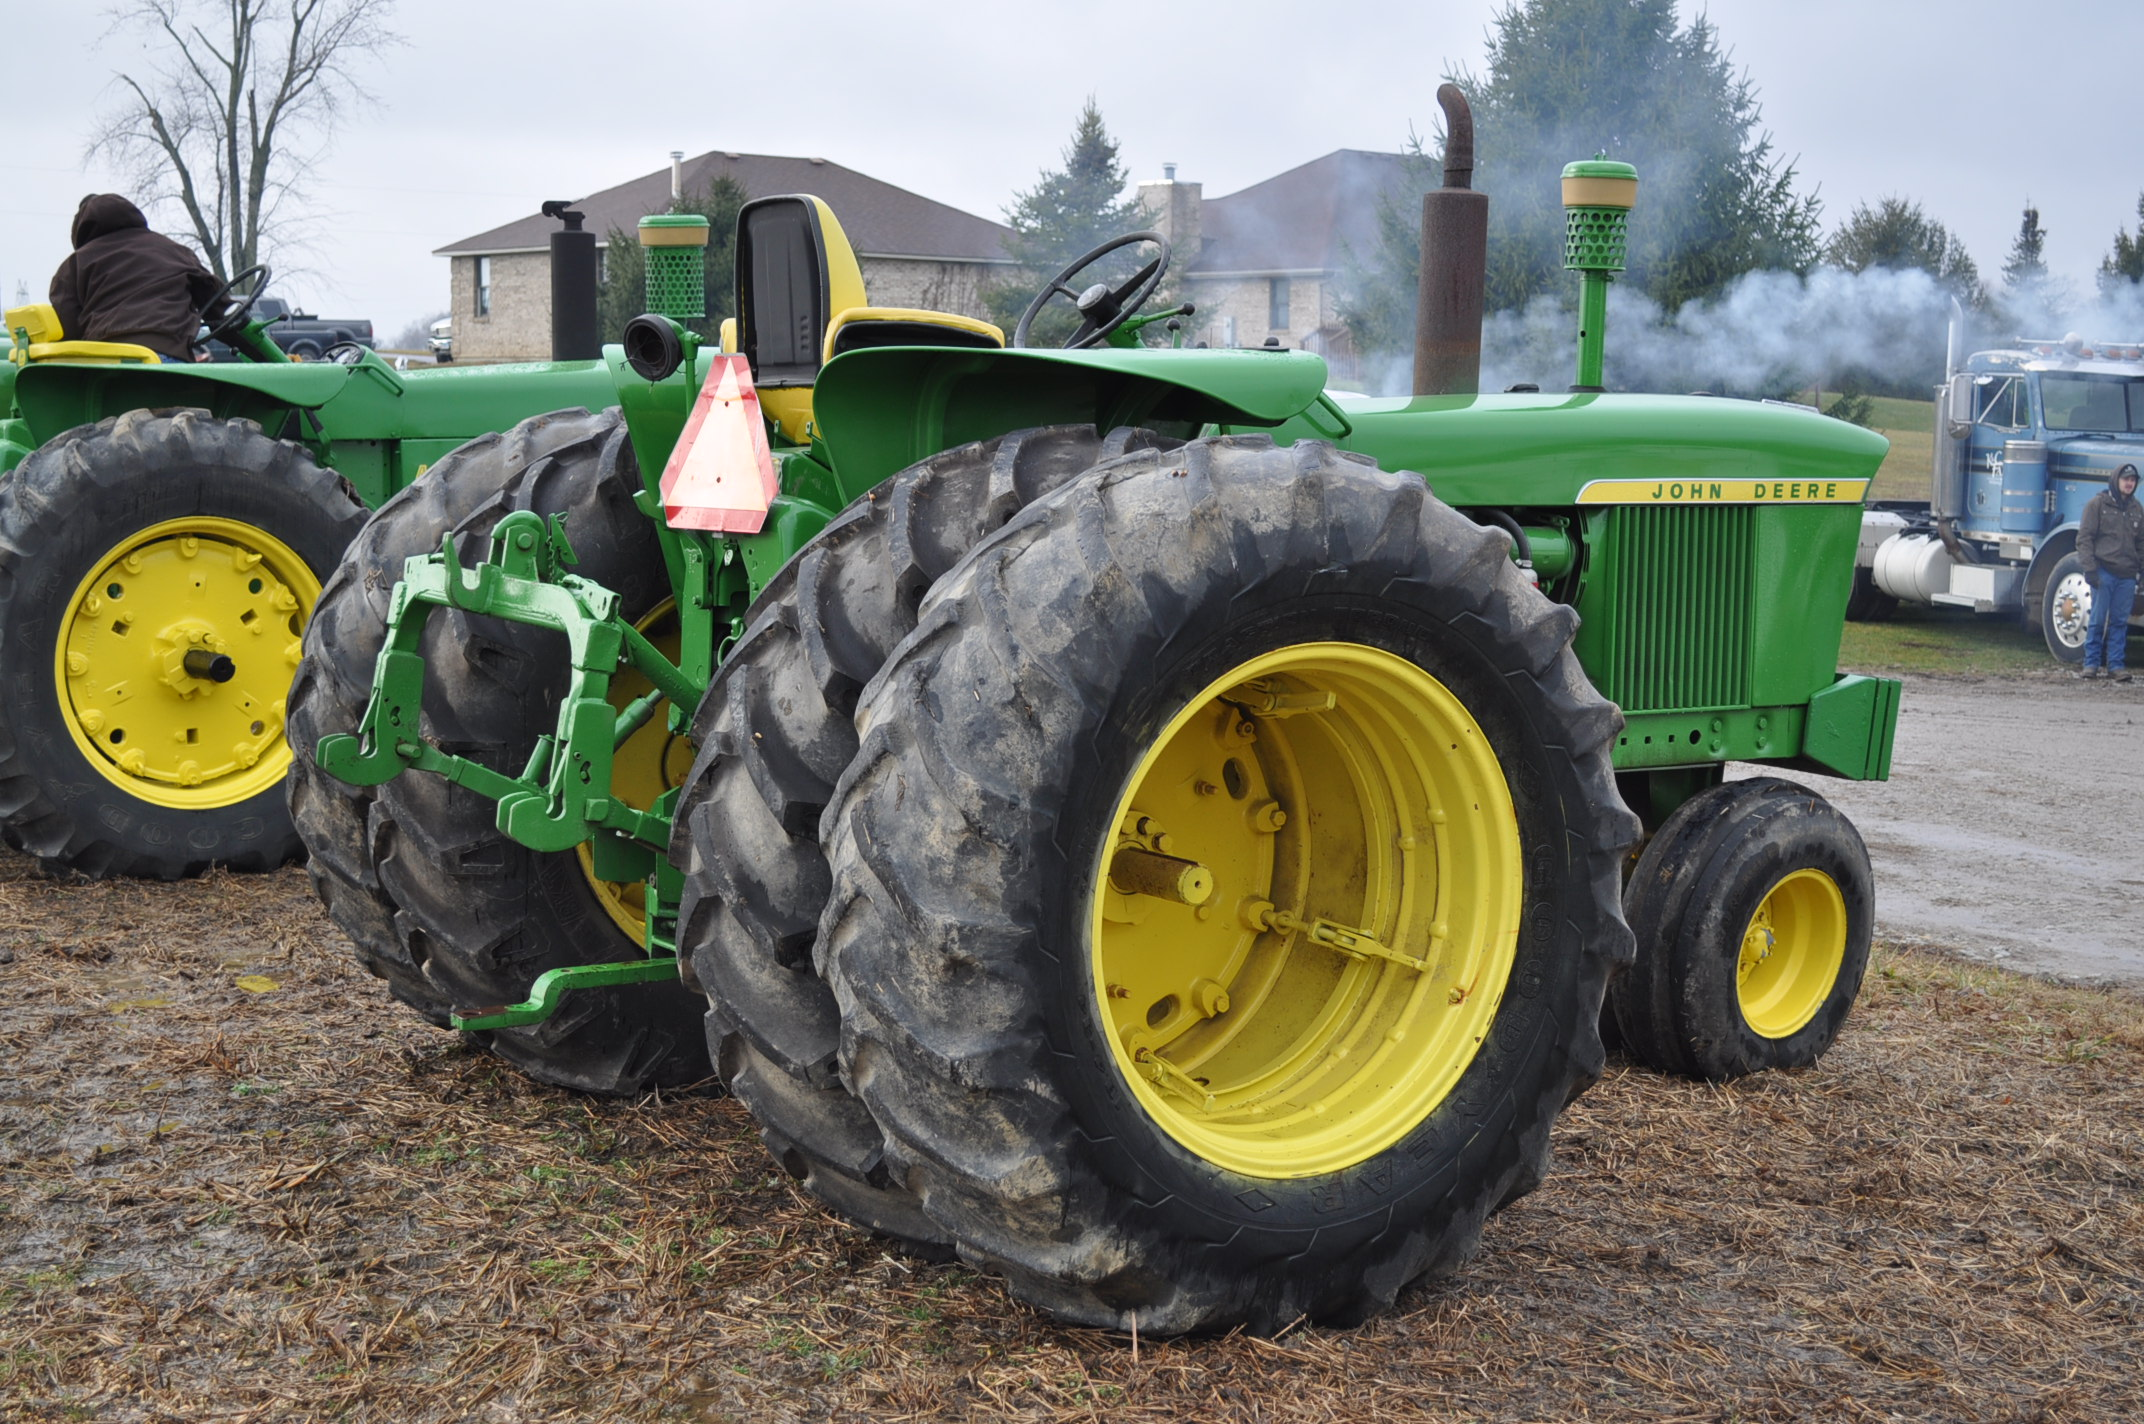 John Deere 3020 tractor, diesel, 18.4-34 rear, clamp on duals, 11L-15 narrow front, Syncro, 2 - Image 3 of 15